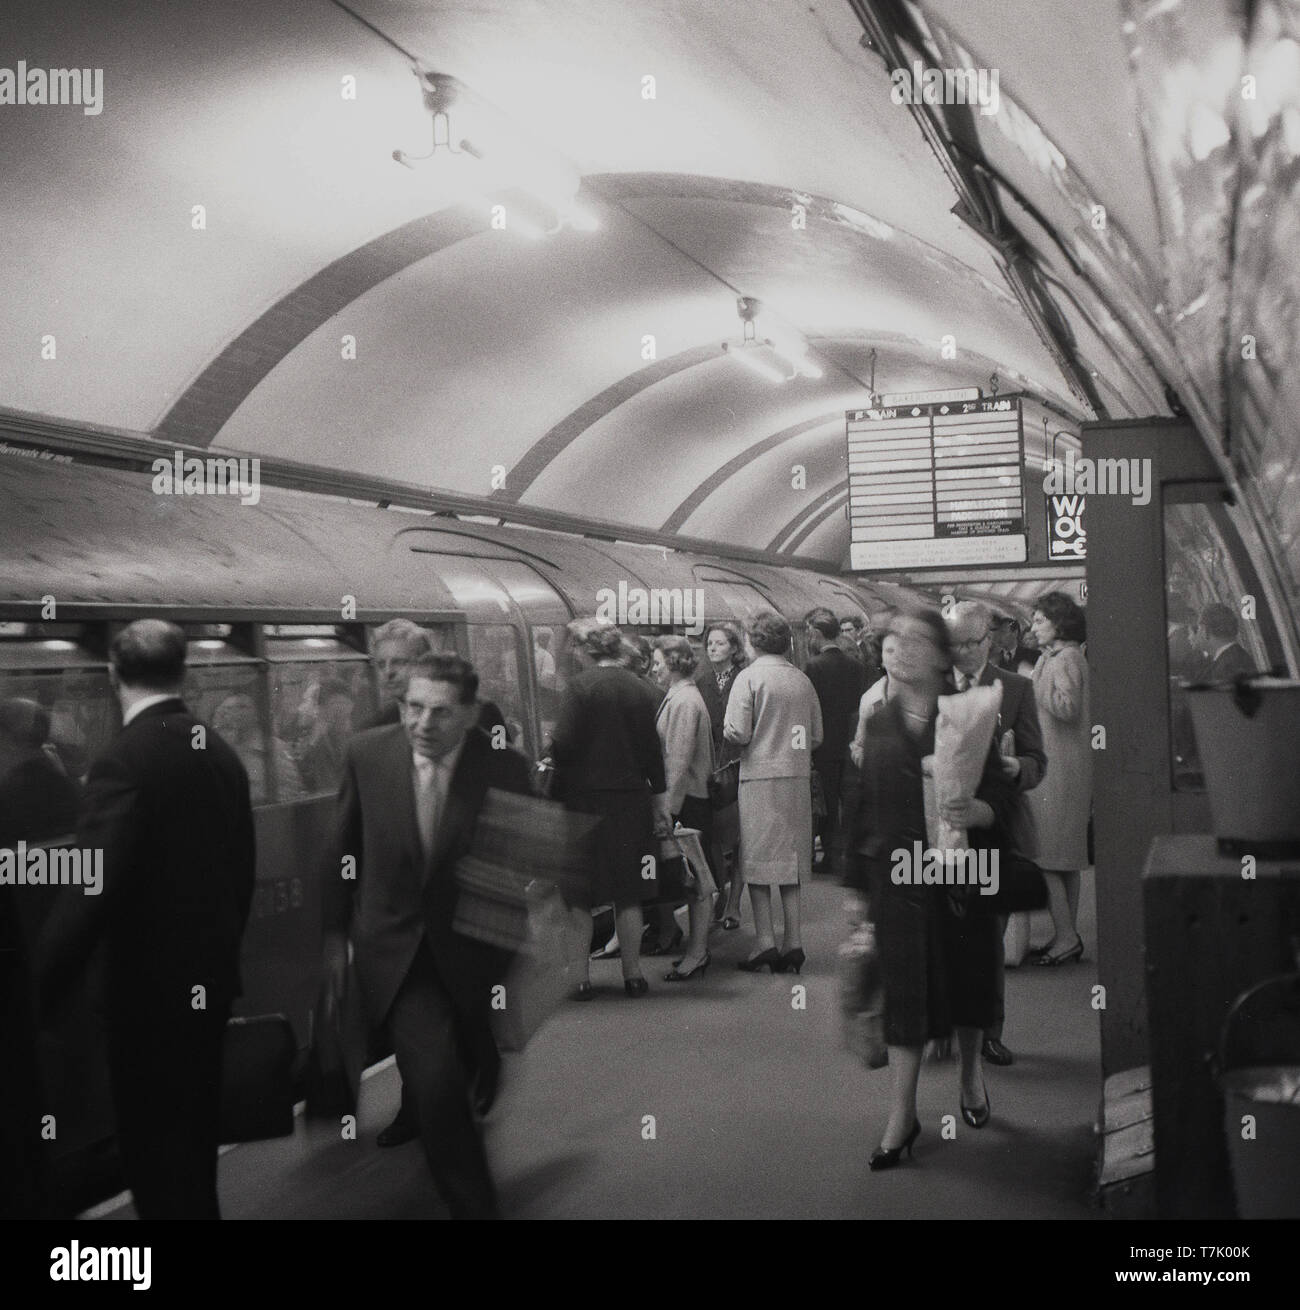 1960s, historical picture of London Underground, a tube train on the Bakerloo line at a platform, people getting on and off the train, London, England, UK. Opened in 1906, the Bakerloo line runs from north-west london to south london via the west end. - Stock Image